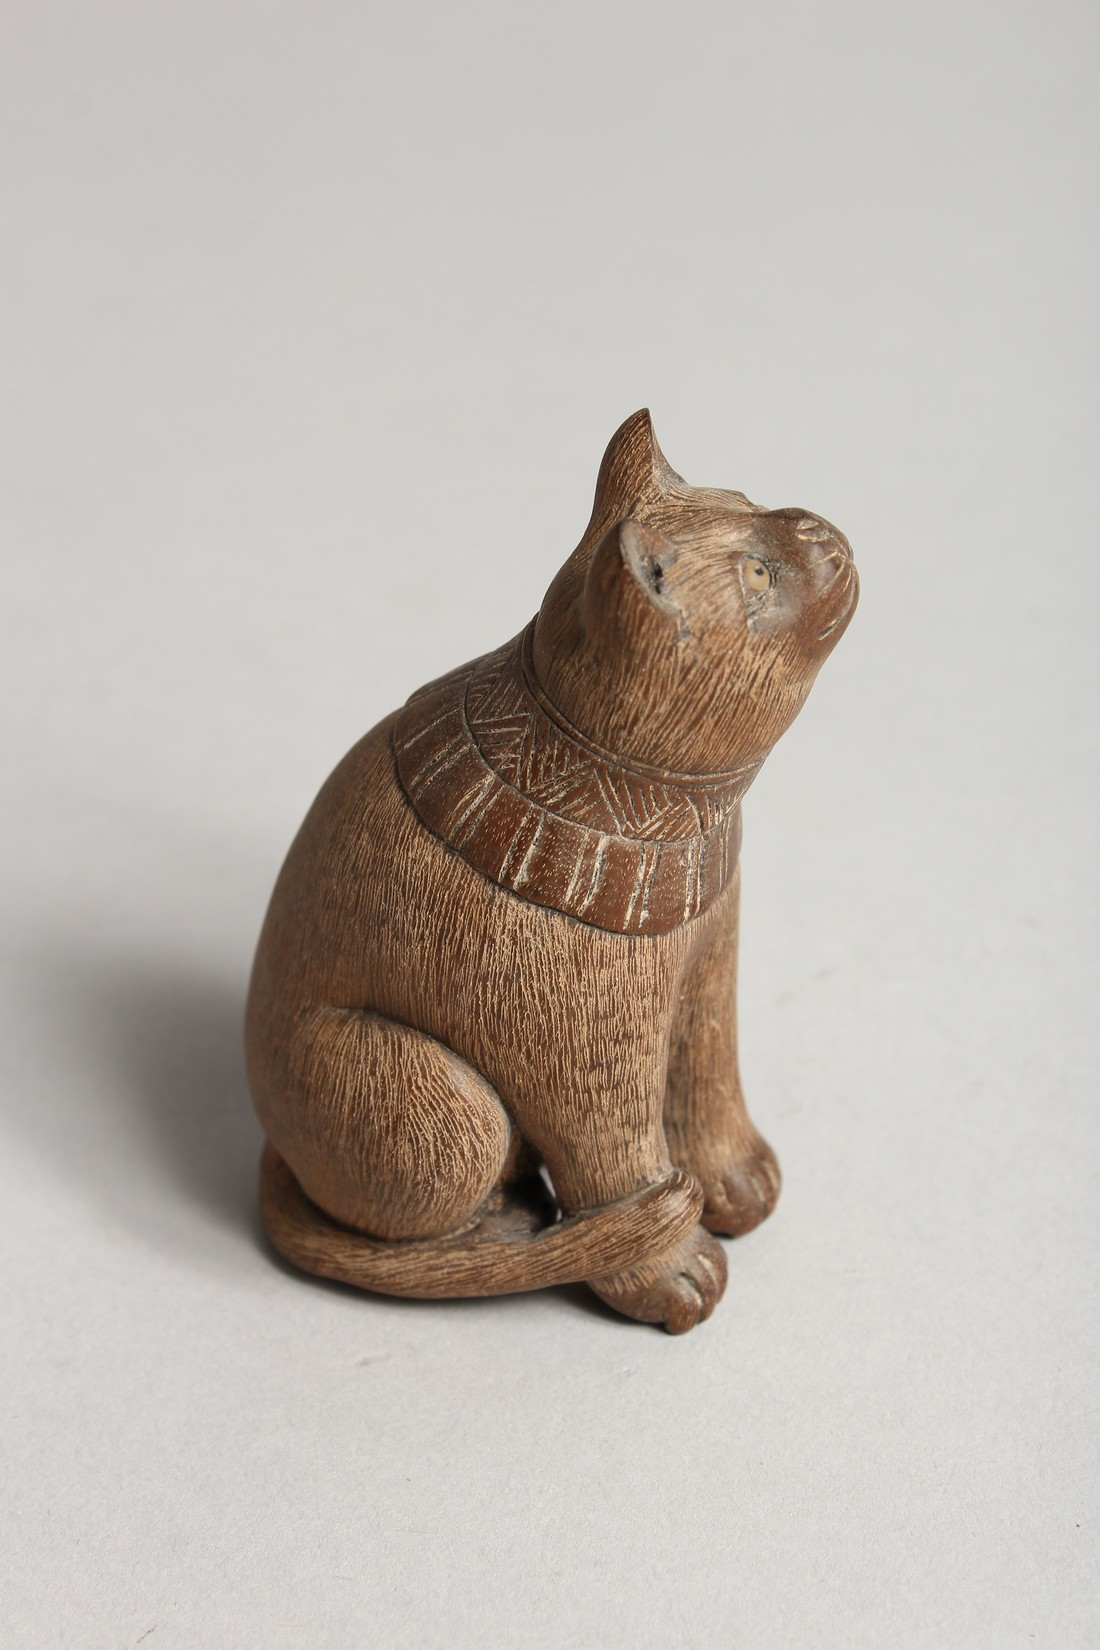 A JAPANESE CARVED WOODEN SEATED CAT Signed - Image 3 of 4